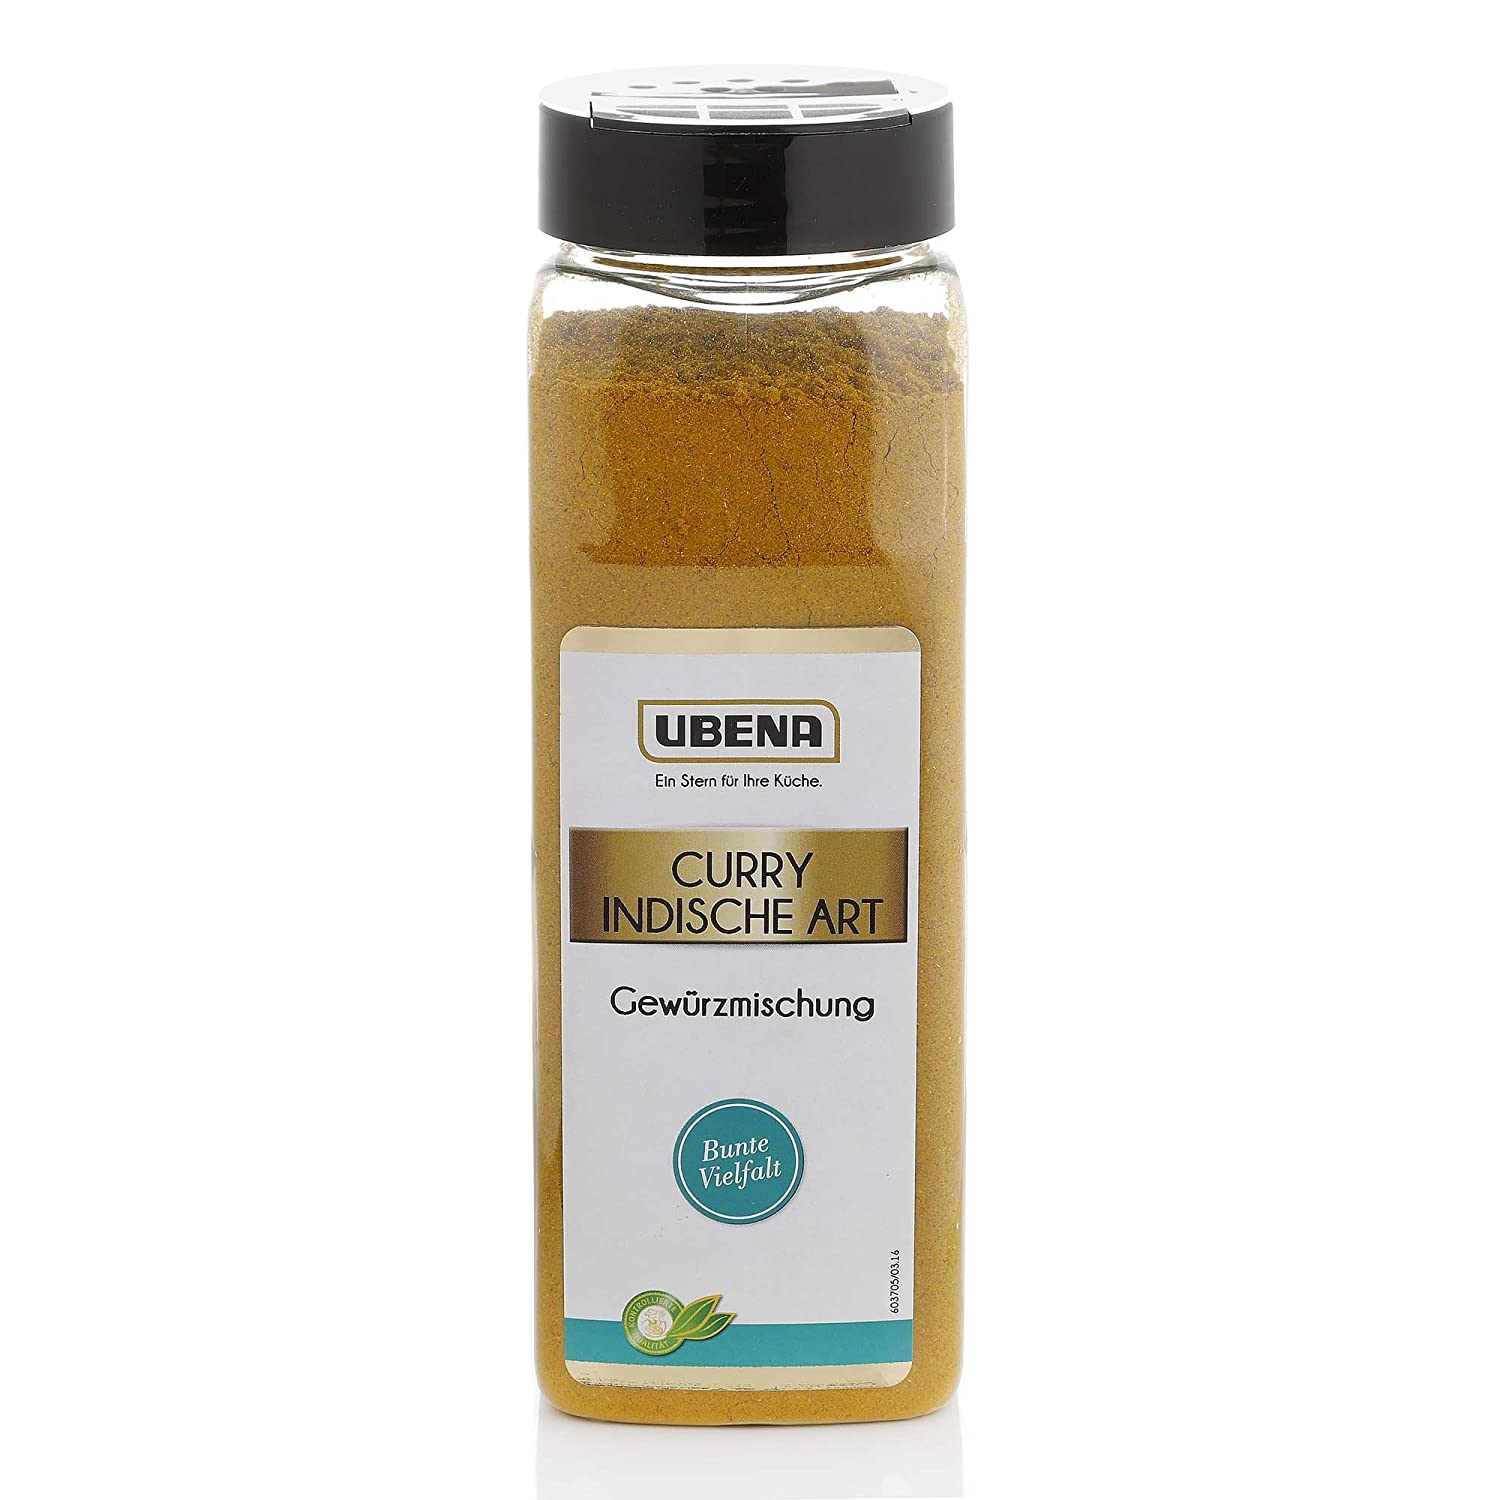 Ubena Curry Indische Art 500 g Currypulver Indisches Gewürz, Curry ...